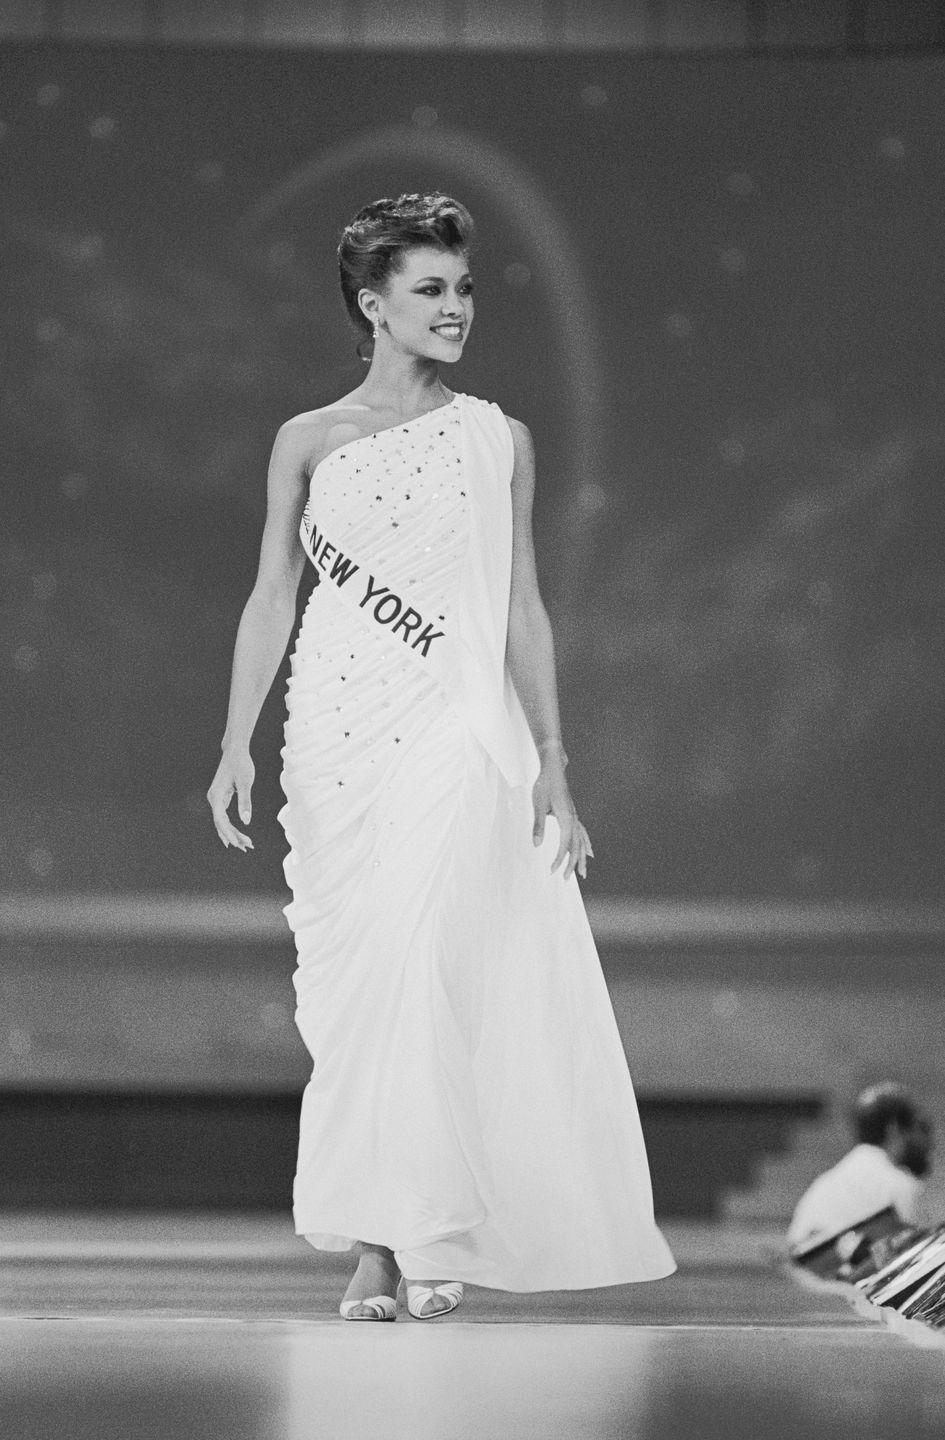 <p>Vanessa Williams wore peep-toe shoes, which had a comeback from the retro and pinup era of the '40s and '50s, onstage at the Miss America pageant.</p>